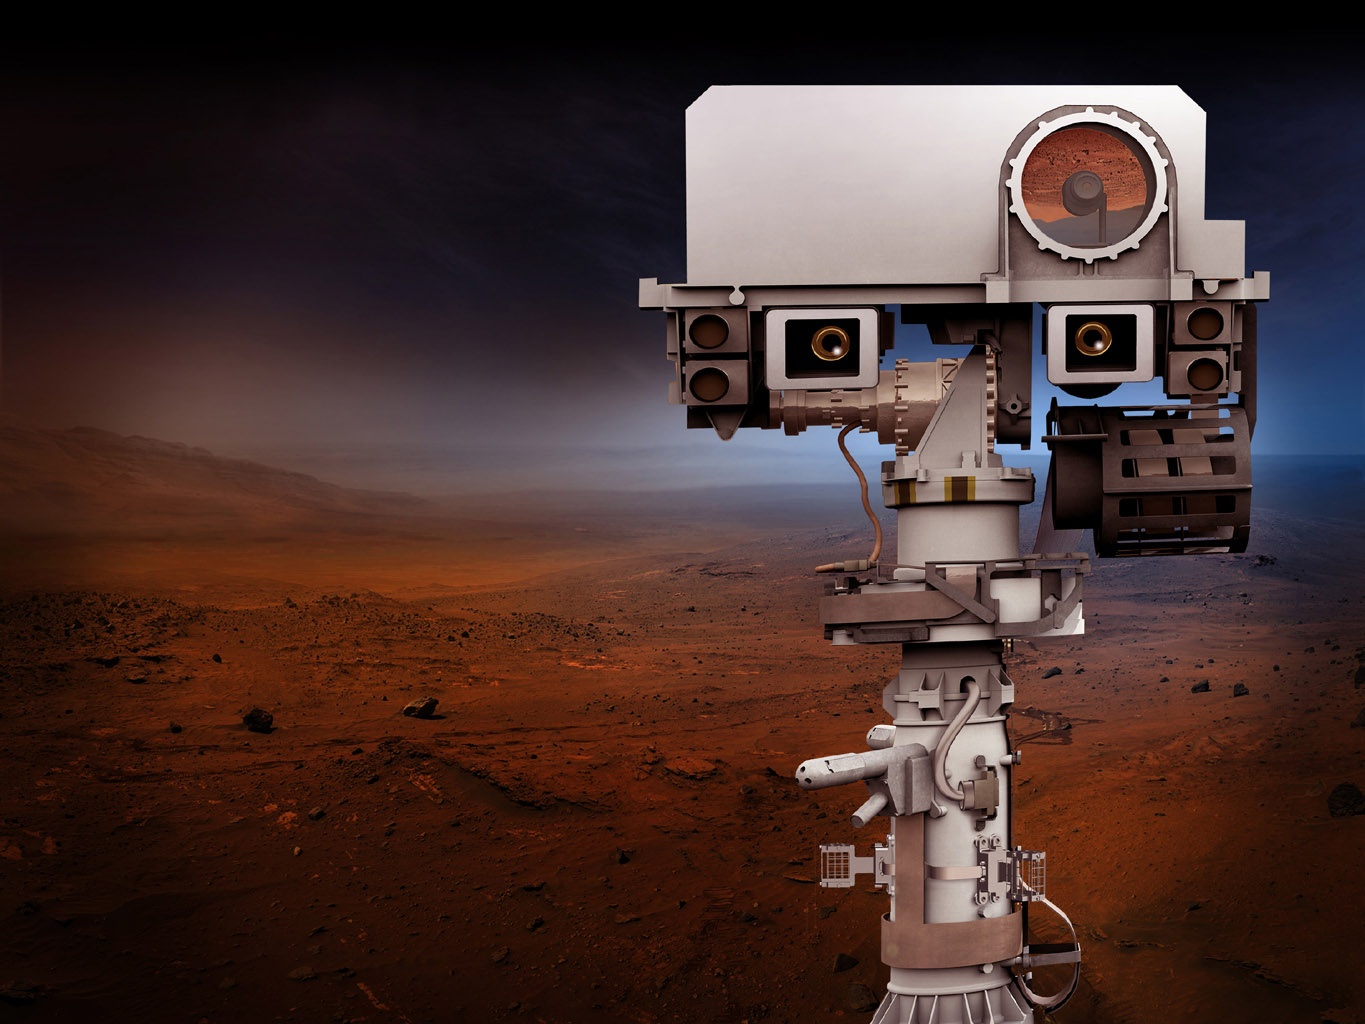 NASA's Mars 2020 Project will re-use the basic engineering of NASA's Mars Science Laboratory/Curiosity to send a different rover to Mars, with new objectives and instruments. This artist's concept depicts the top of the 2020 rover's mast.